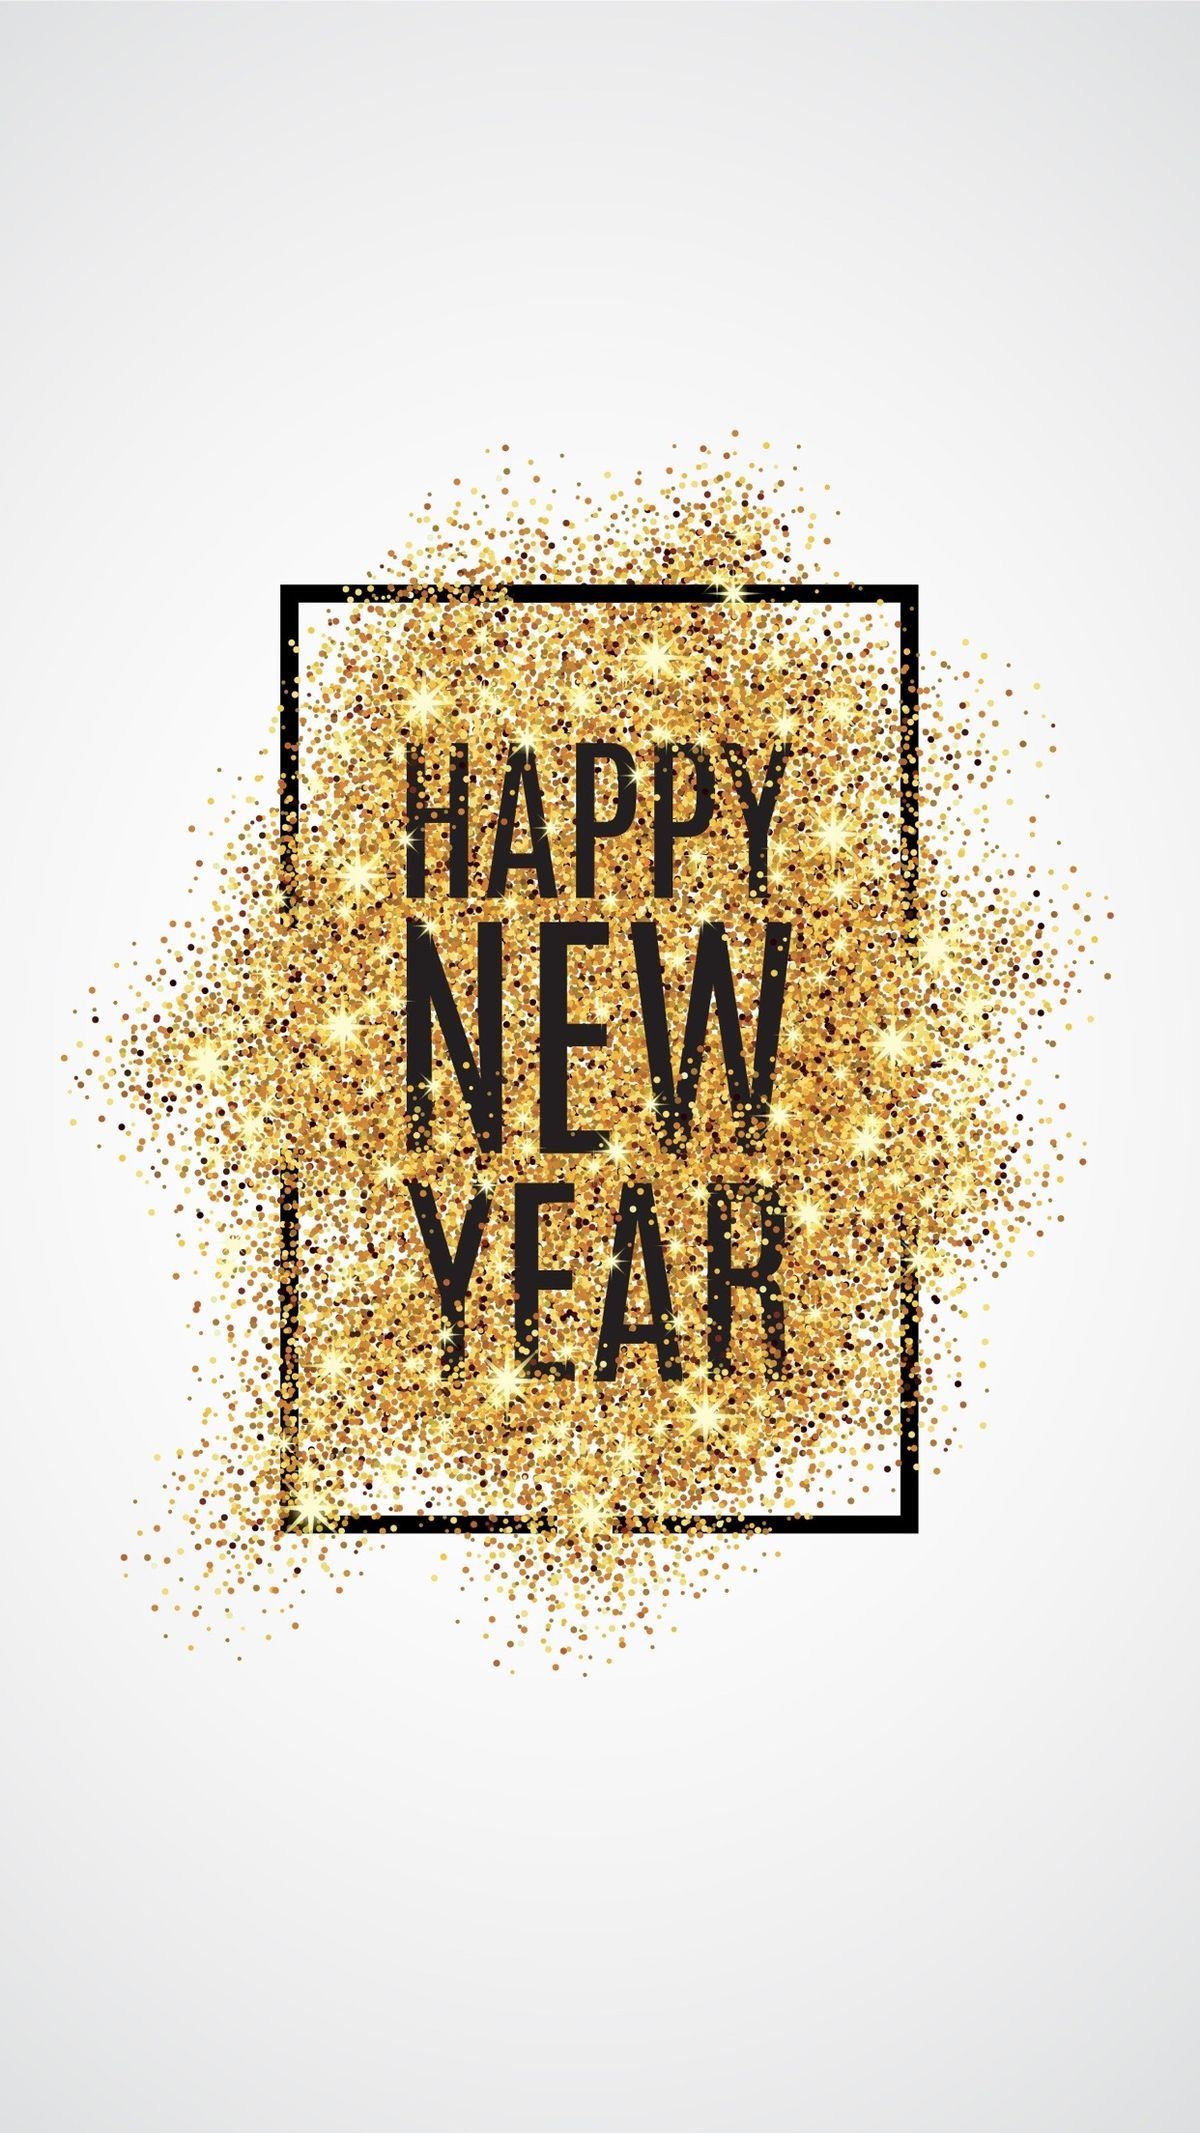 the happiest of new years from our free shop family to yours thank you for a fantastic 2016 and cheers to an even more fashionable 2017